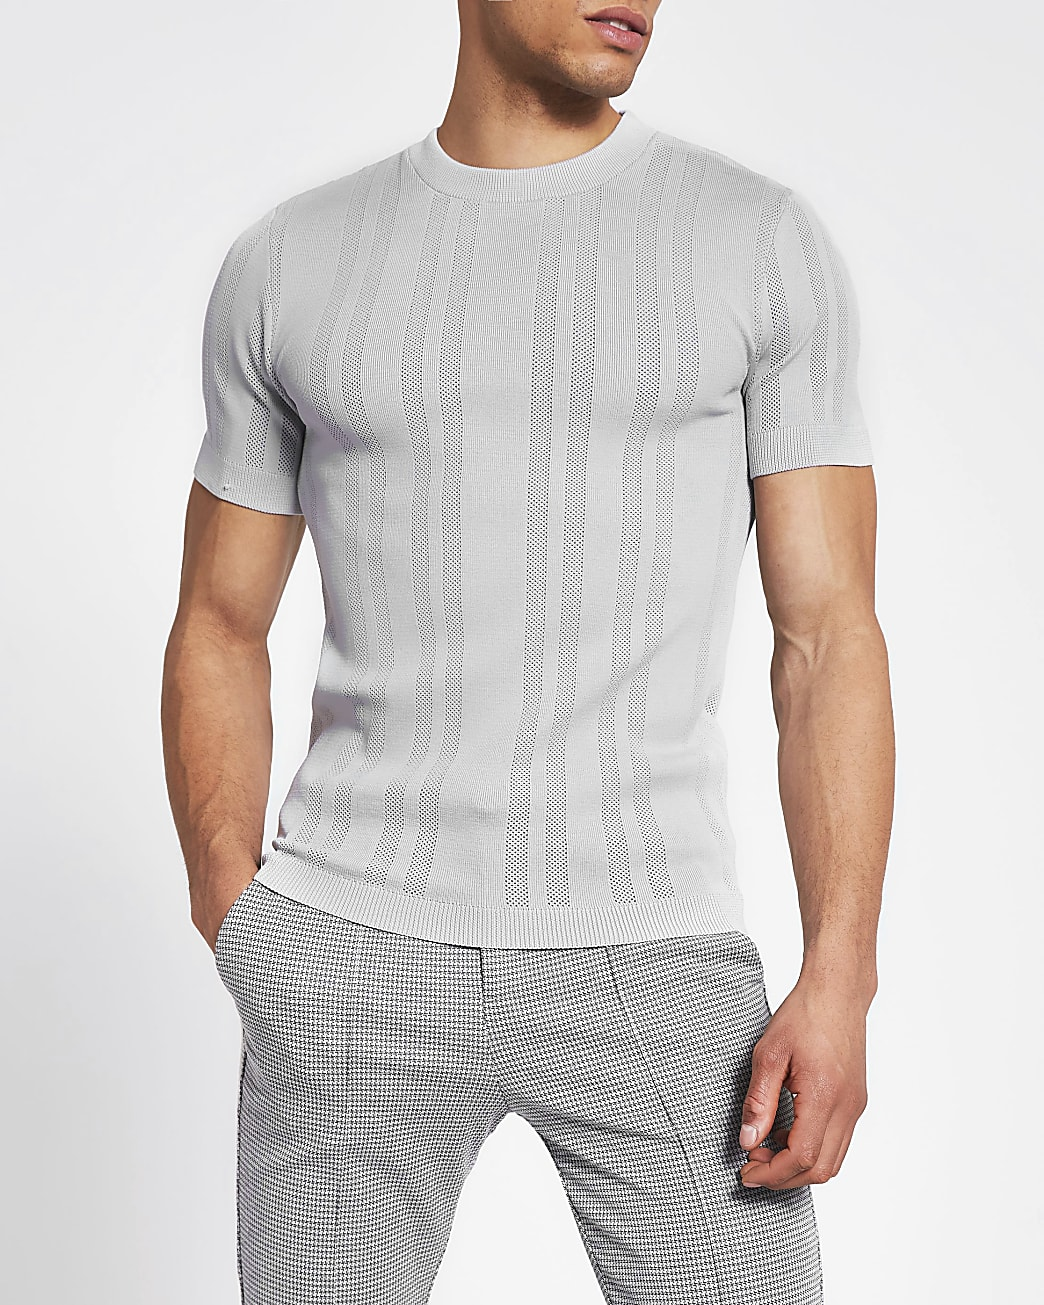 Grey pointelle knitted muscle fit t-shirt